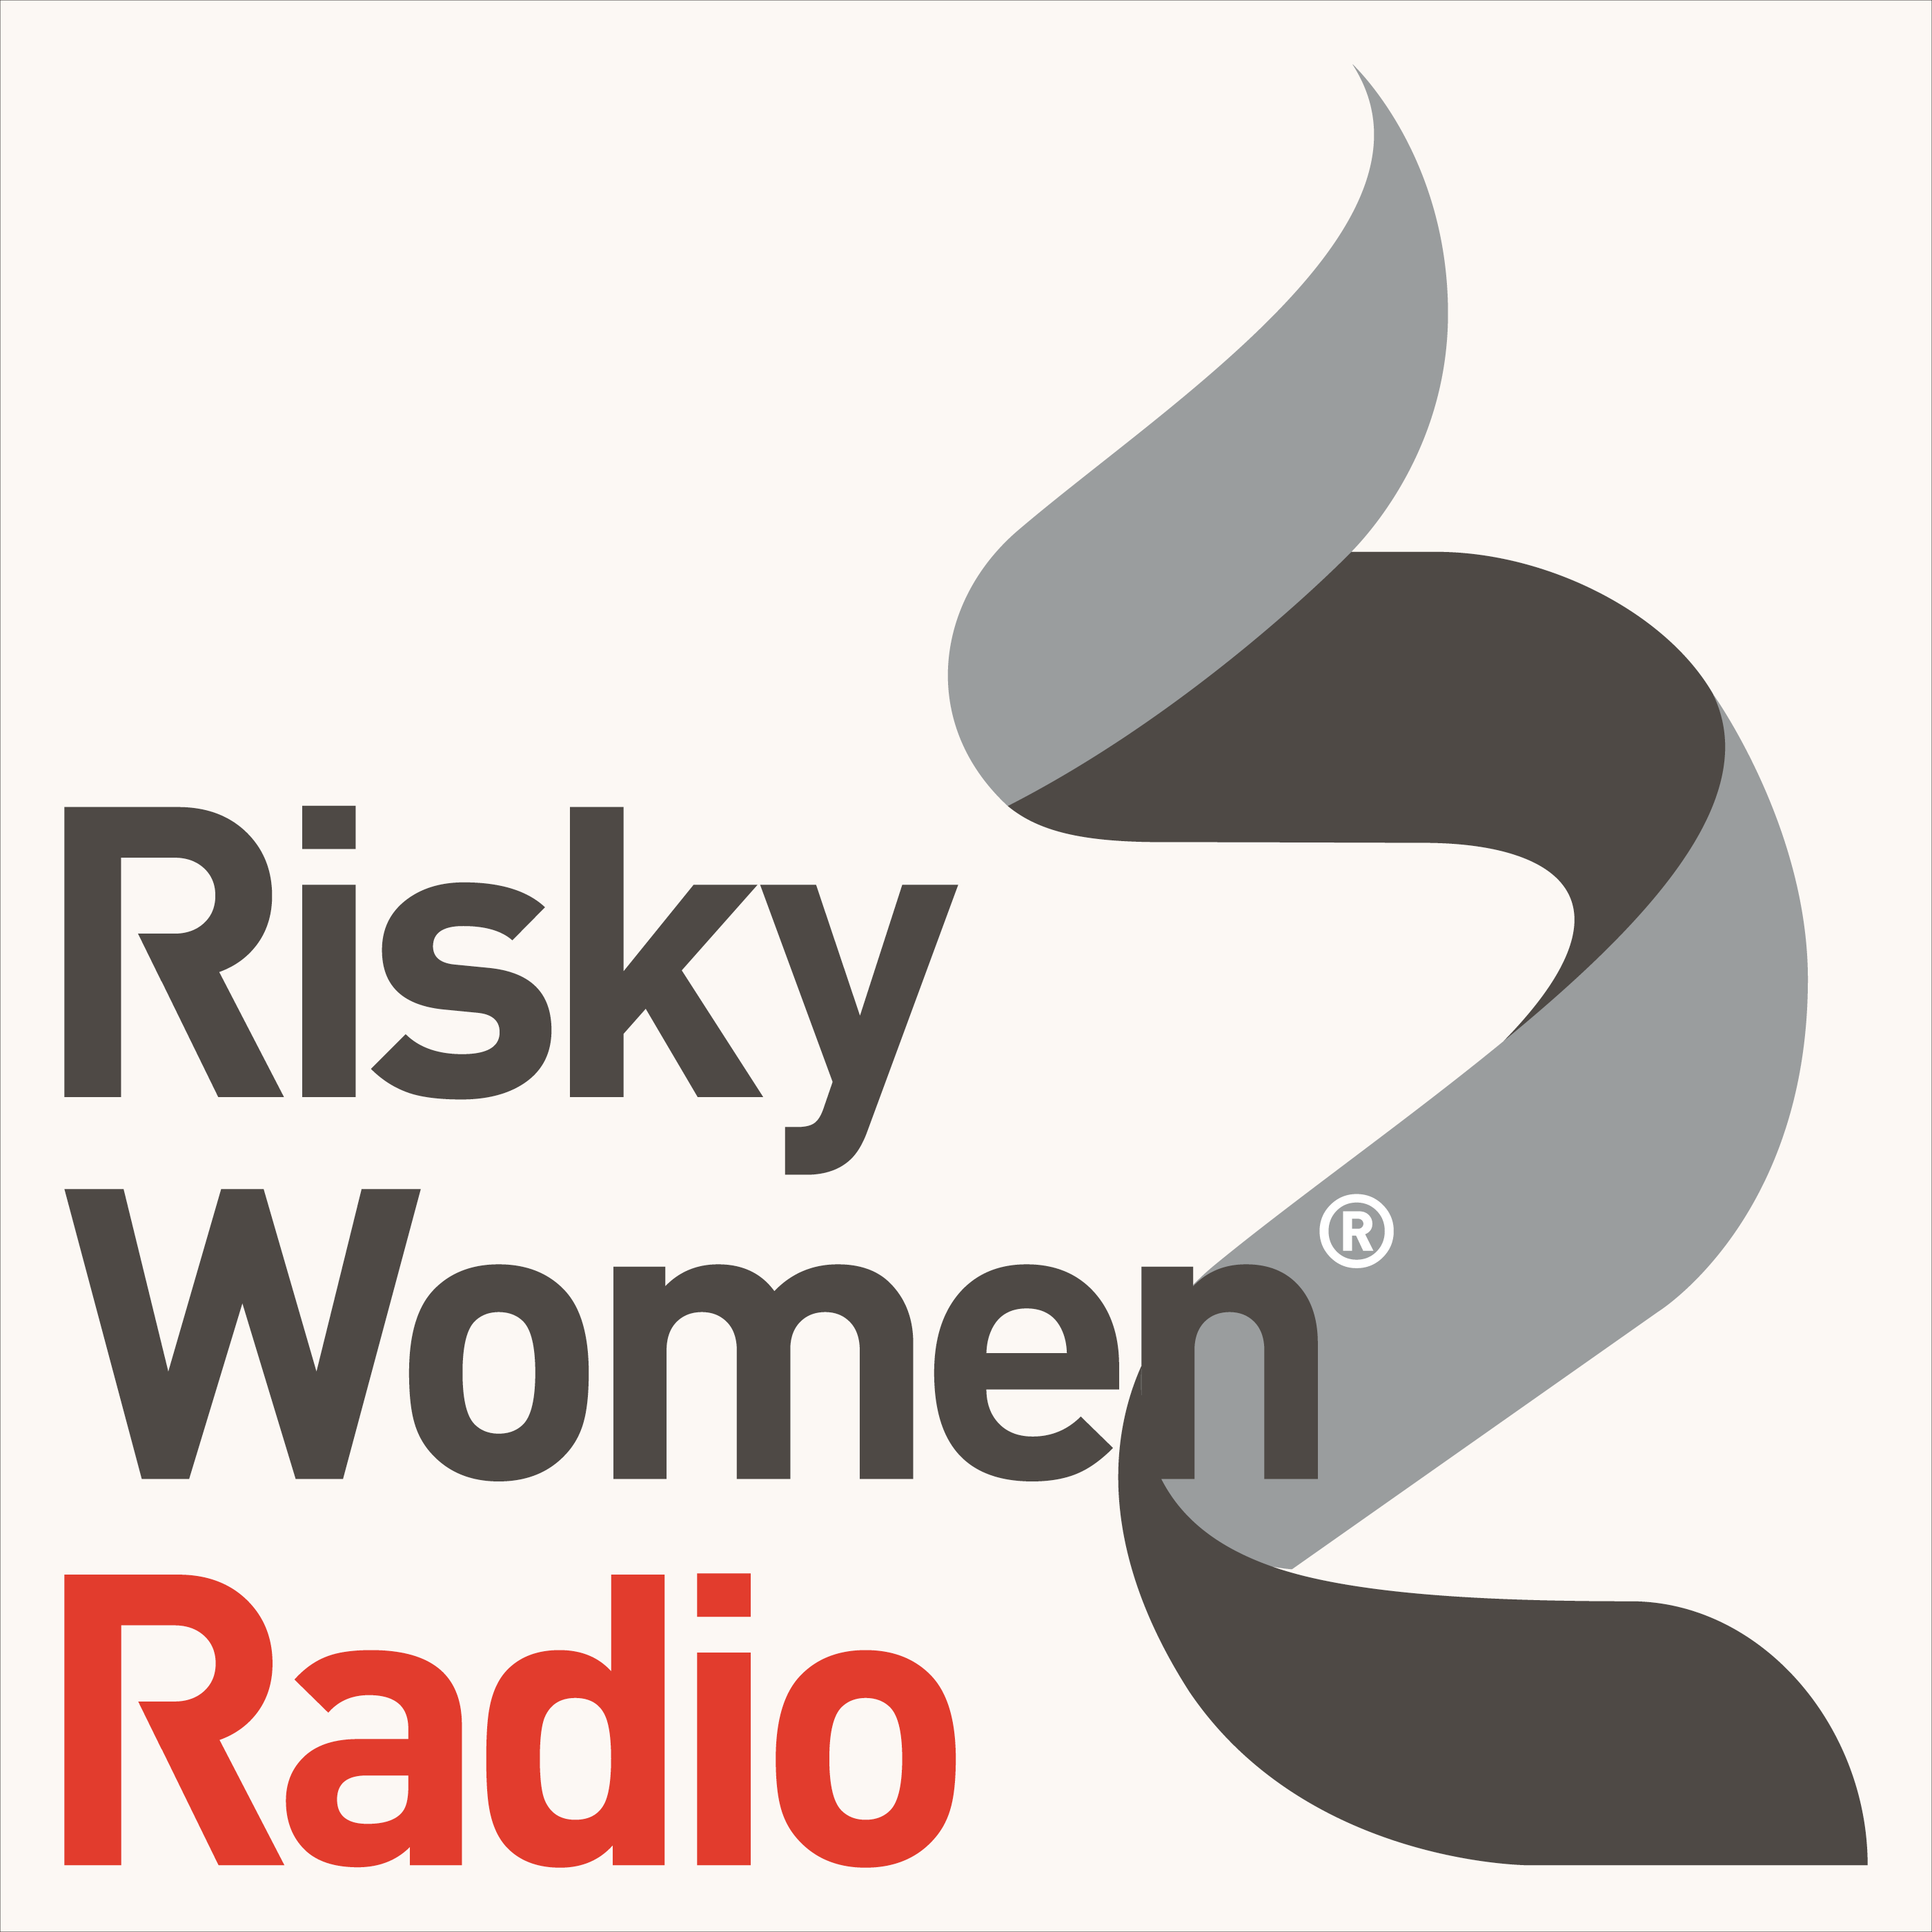 Risky Women Radio show art